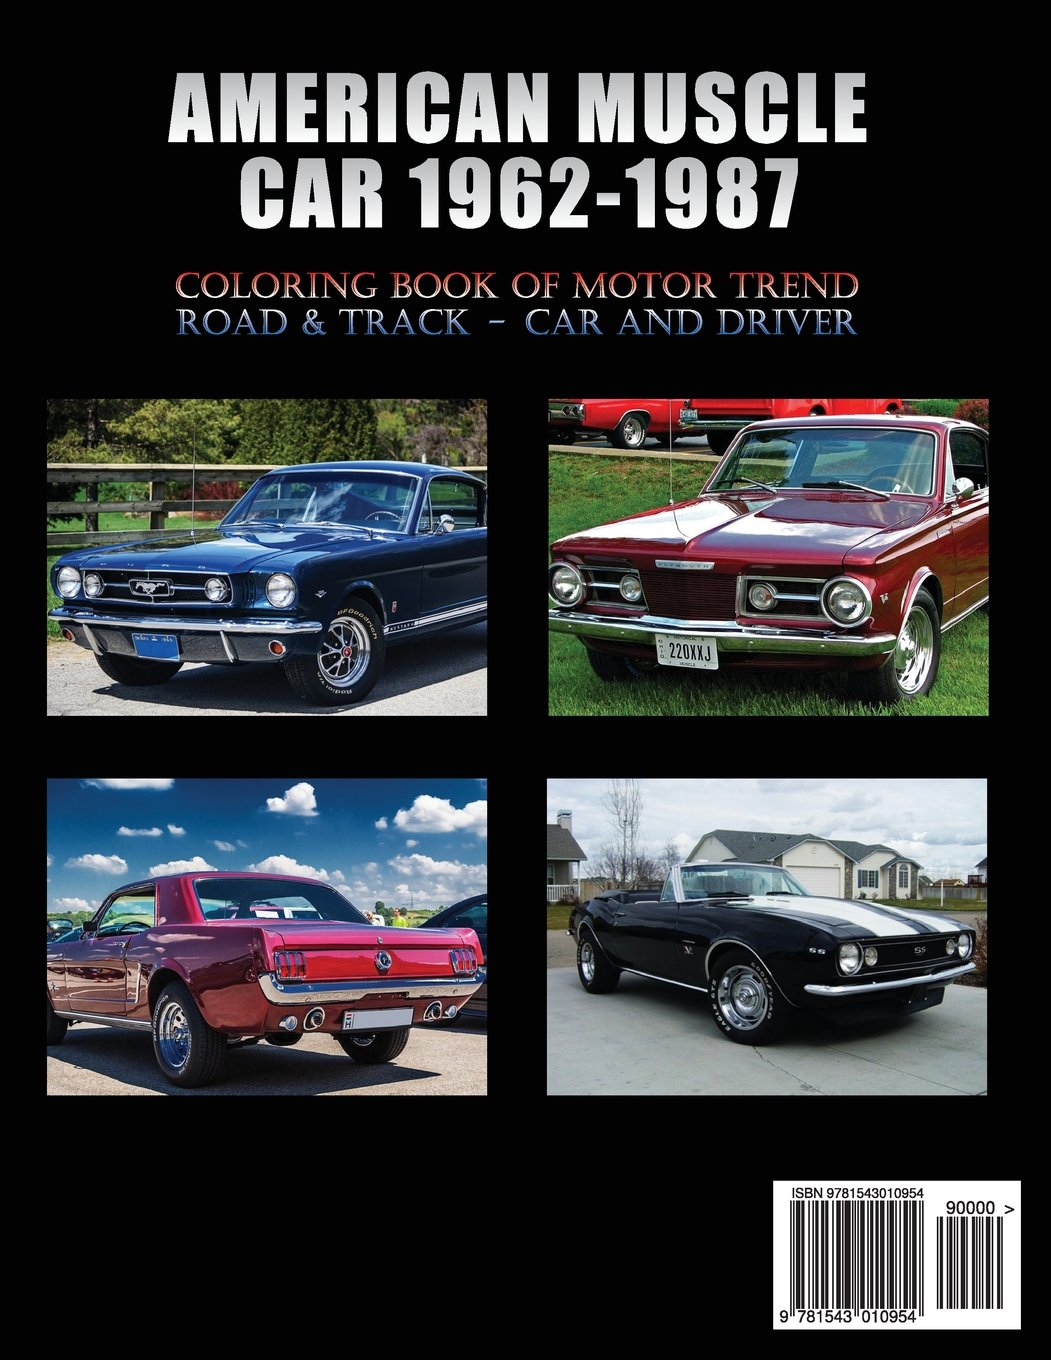 Amazon American Muscle Car 1962 1987 Automobile Lovers Collection Grayscale Coloring Books Vol 2 Book Of Luxury High Performance Classic